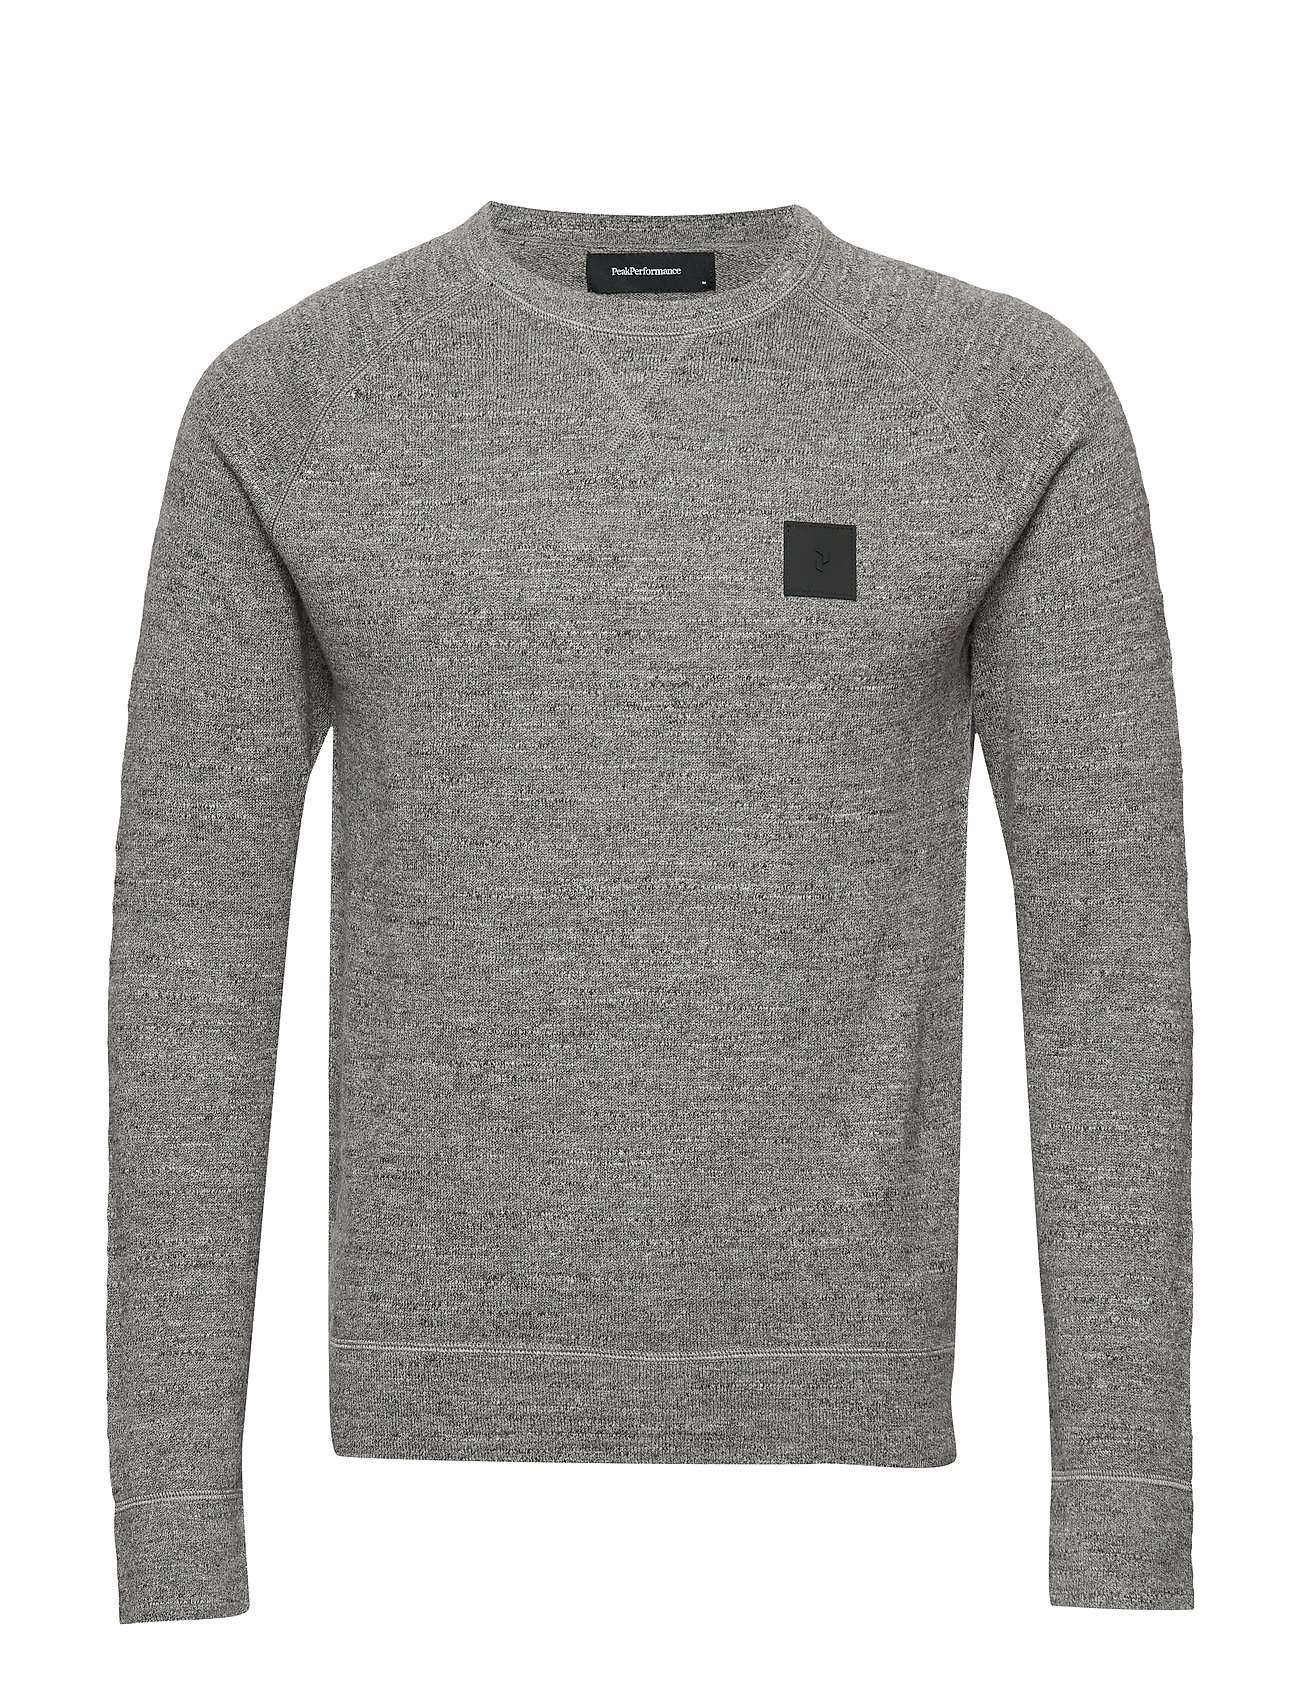 Peak Performance THYLER C - GREY MELANGE